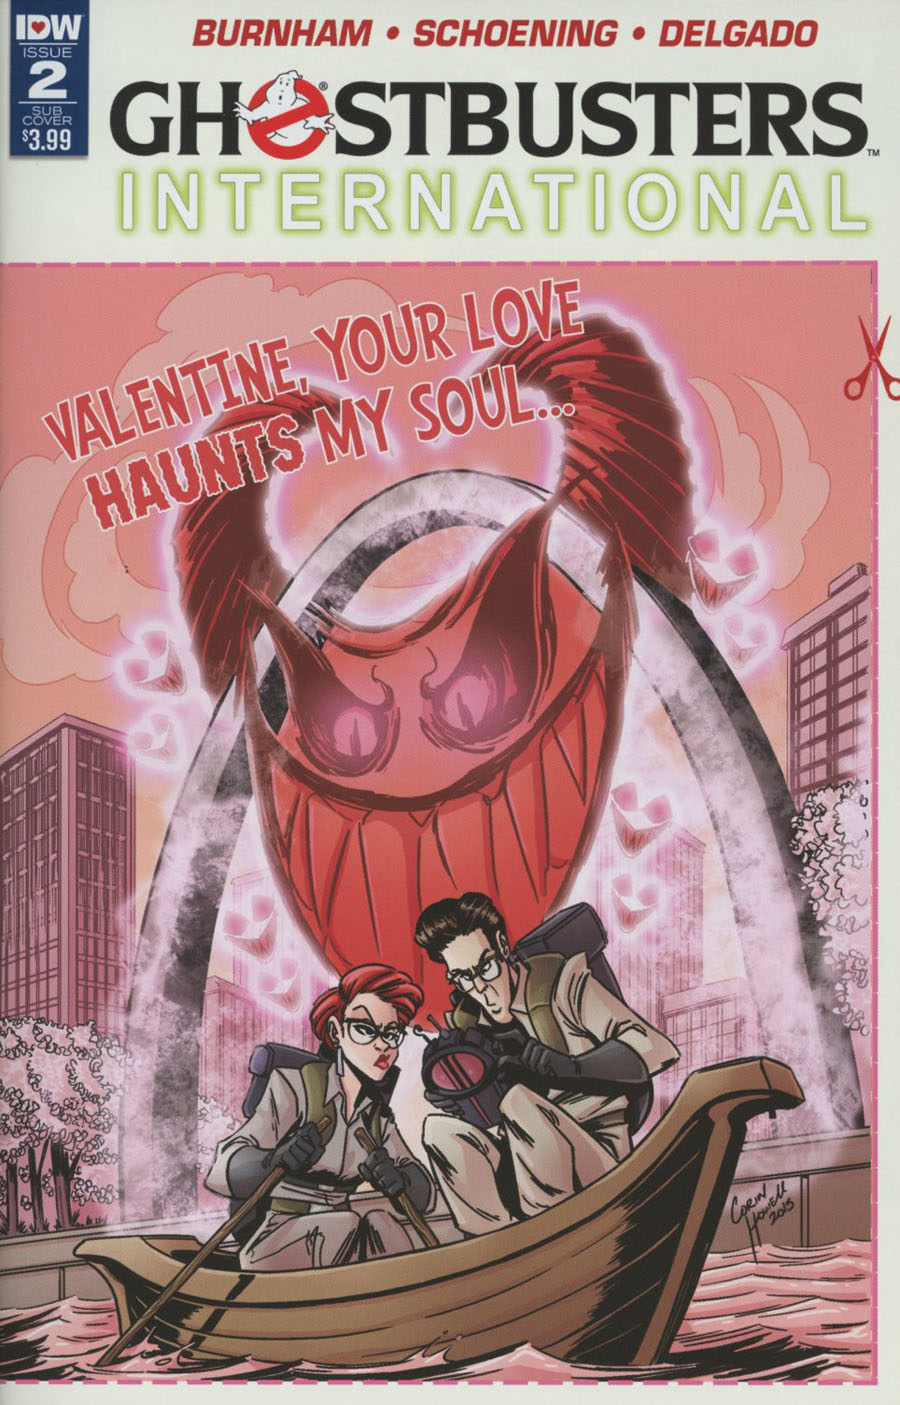 Ghostbusters International #2 Cover B Variant Corin Howell Valentines Day Card Cover